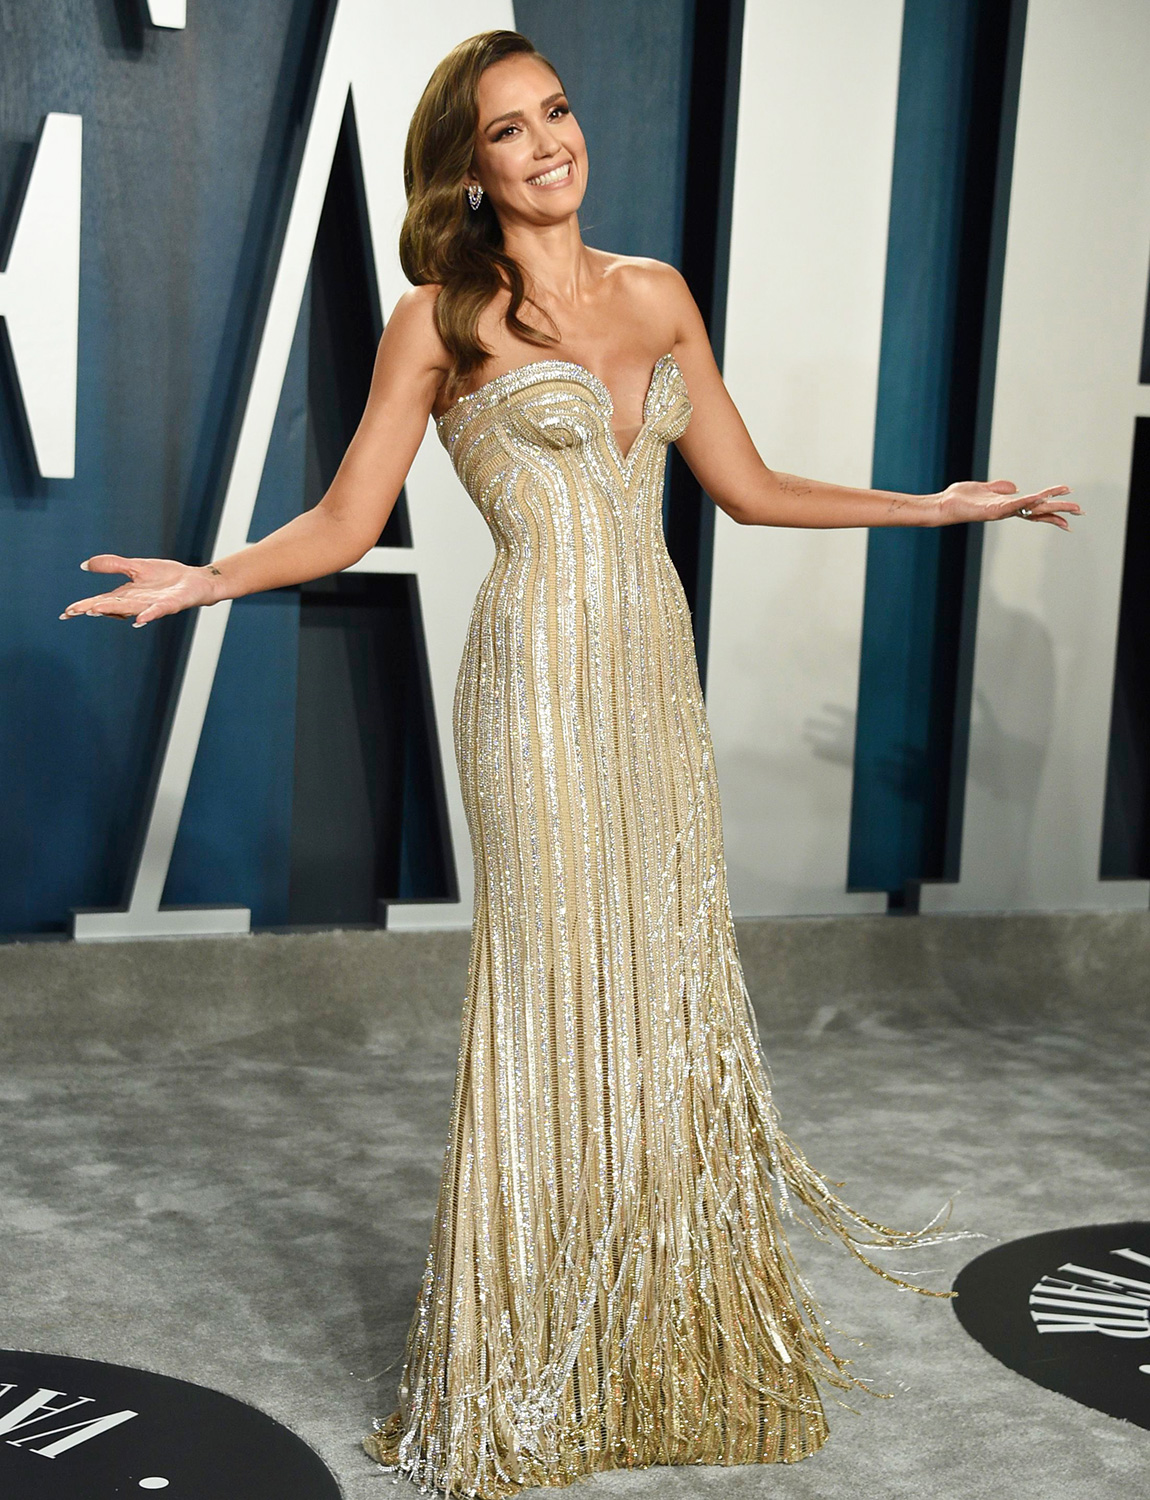 Jessica Alba arrives at the Vanity Fair Oscar Party, in Beverly Hills, Calif